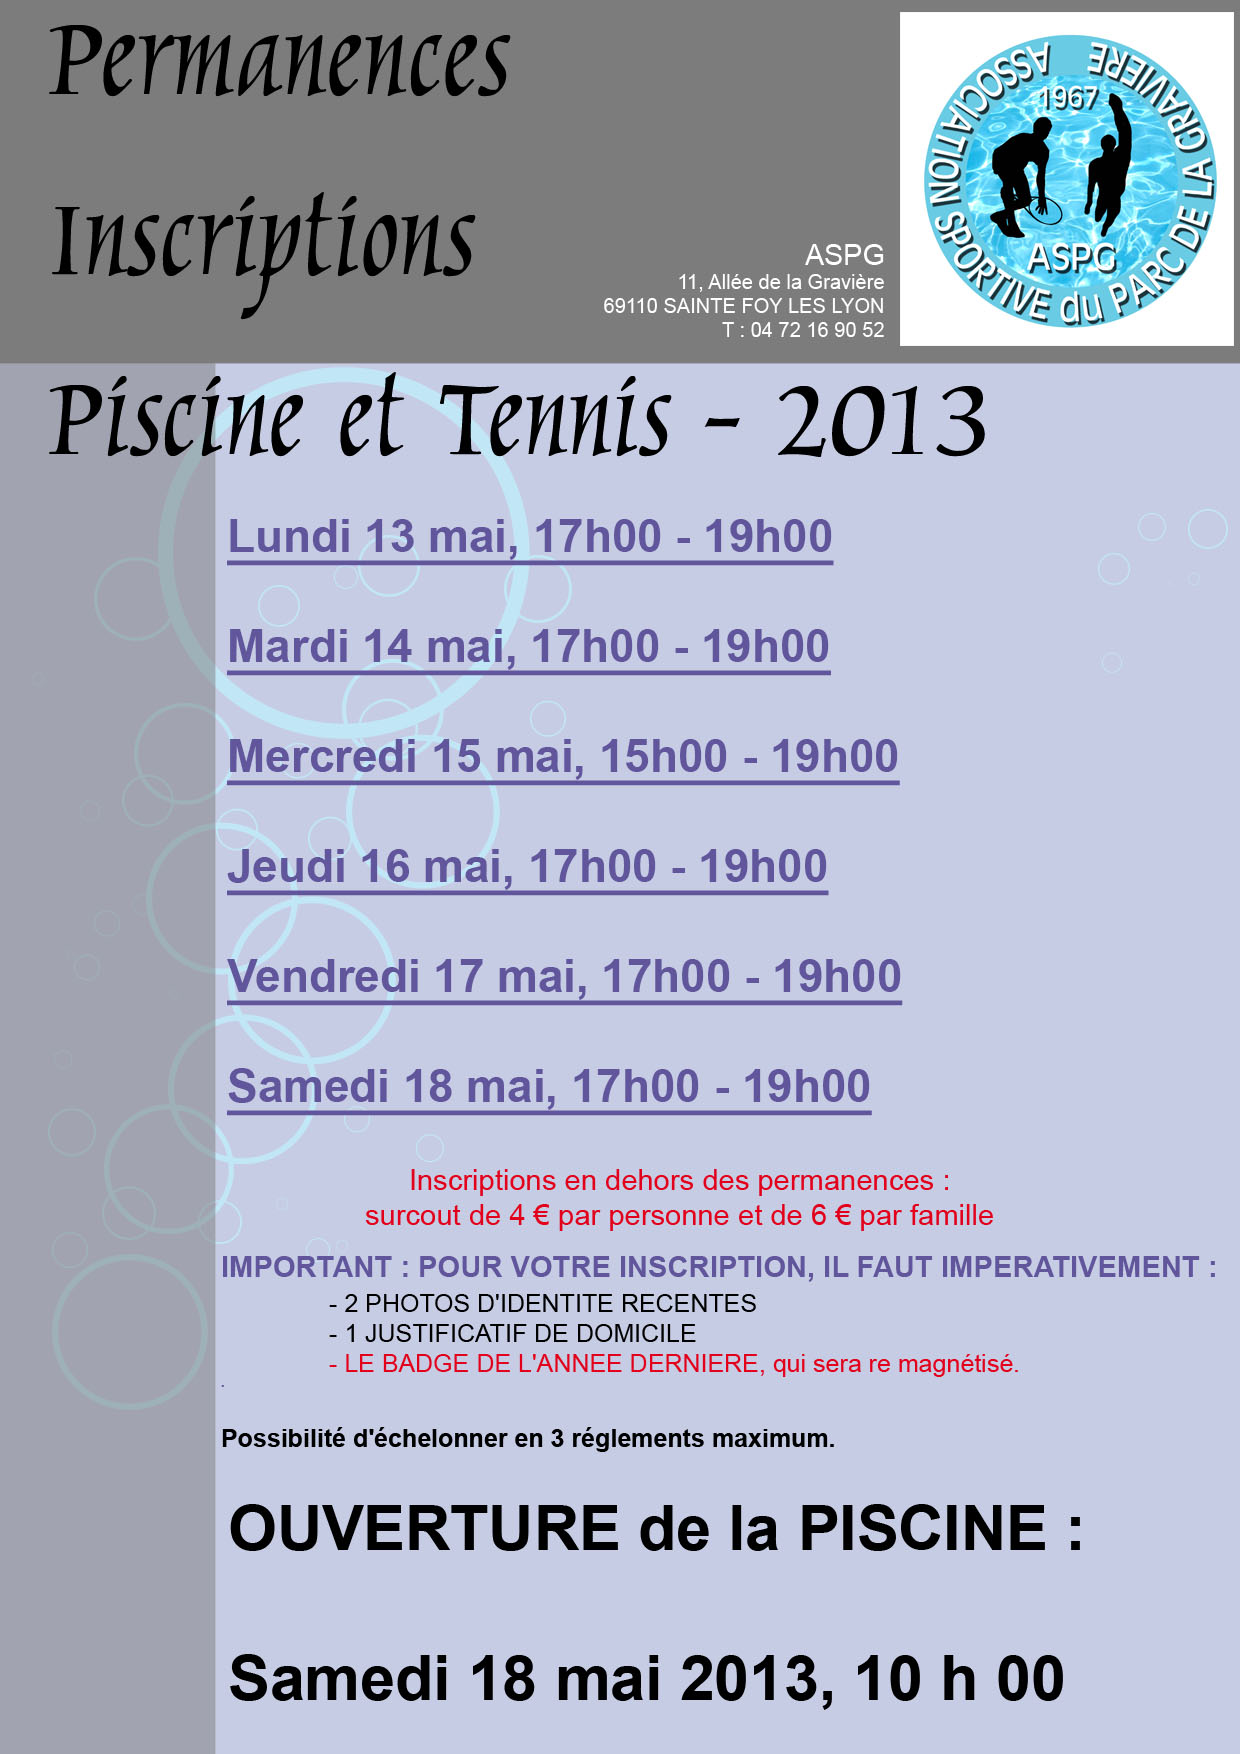 inscriptions_permanences_22042013